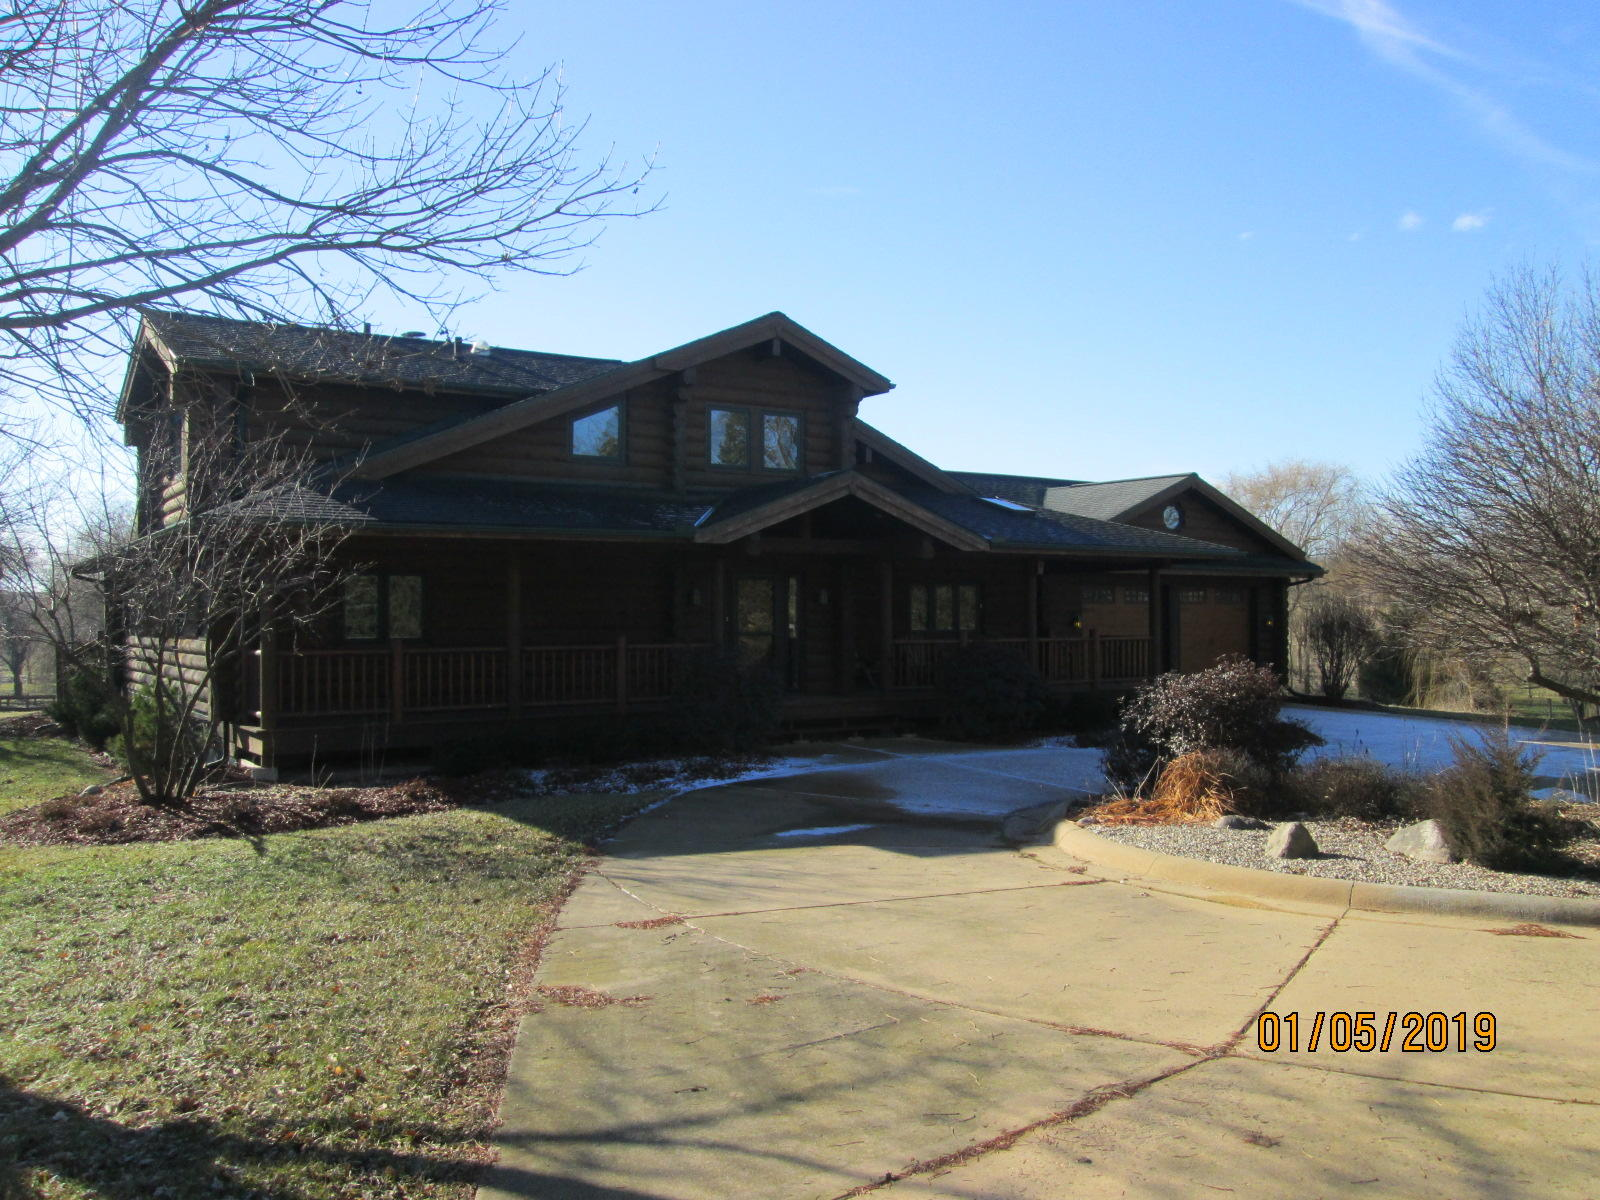 15555 Rte 64, Illinois 61064, 3 Bedrooms Bedrooms, 12 Rooms Rooms,3 BathroomsBathrooms,Single-Family,For Sale,Rte 64,1619549